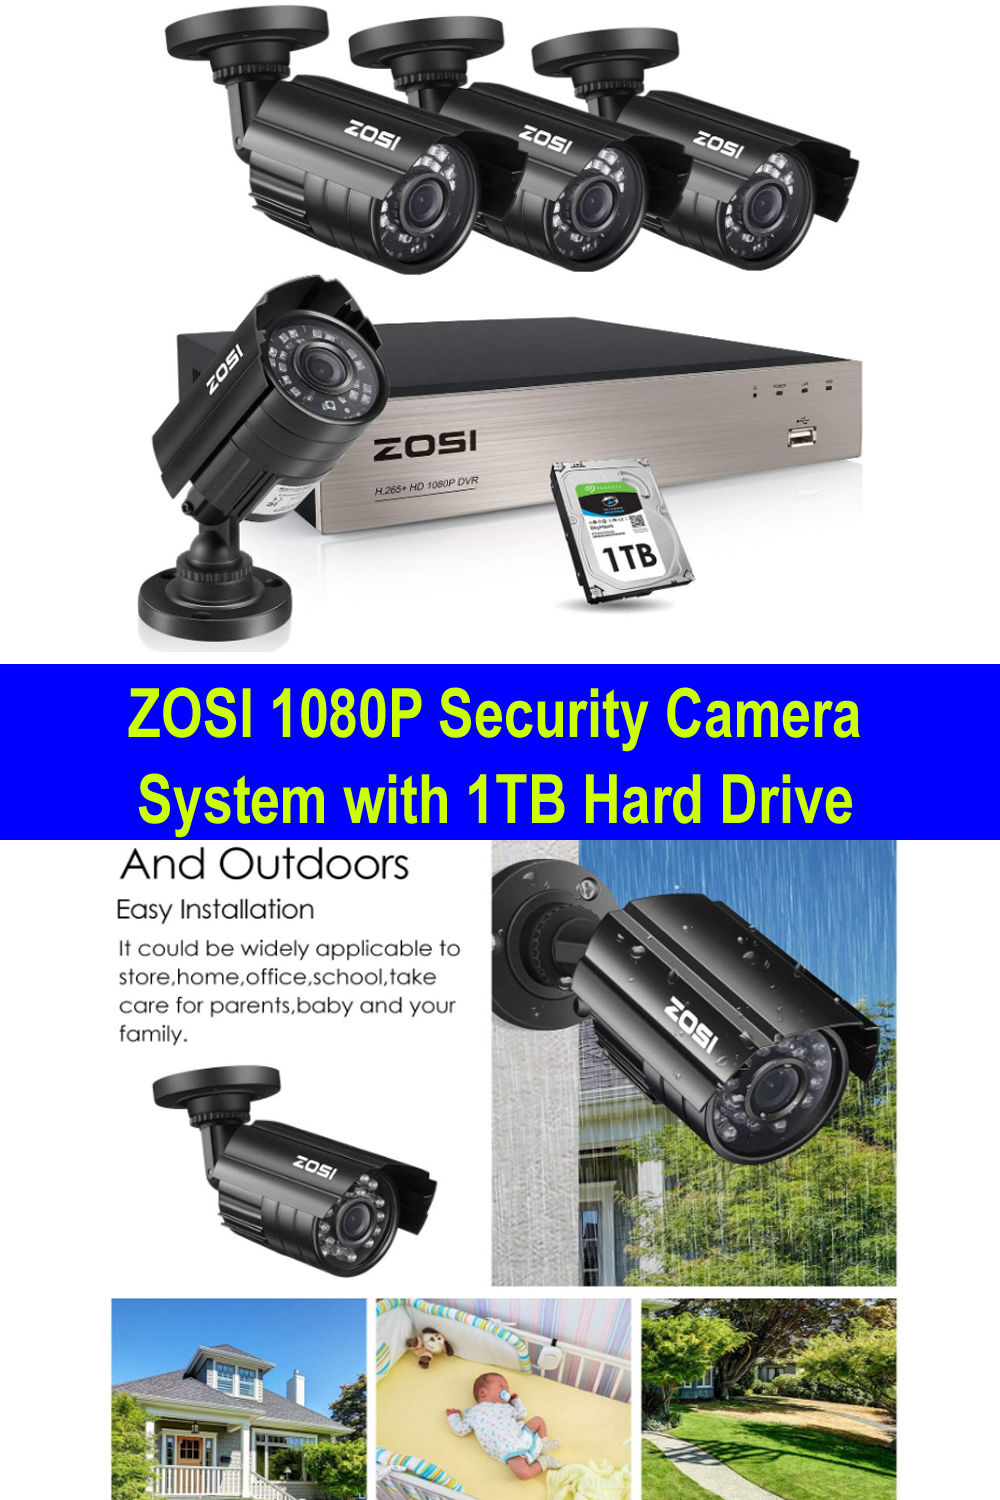 Zosi 1080p Security Camera System With 1tb Hard Drive Security Camera System Best Security Cameras Security Camera